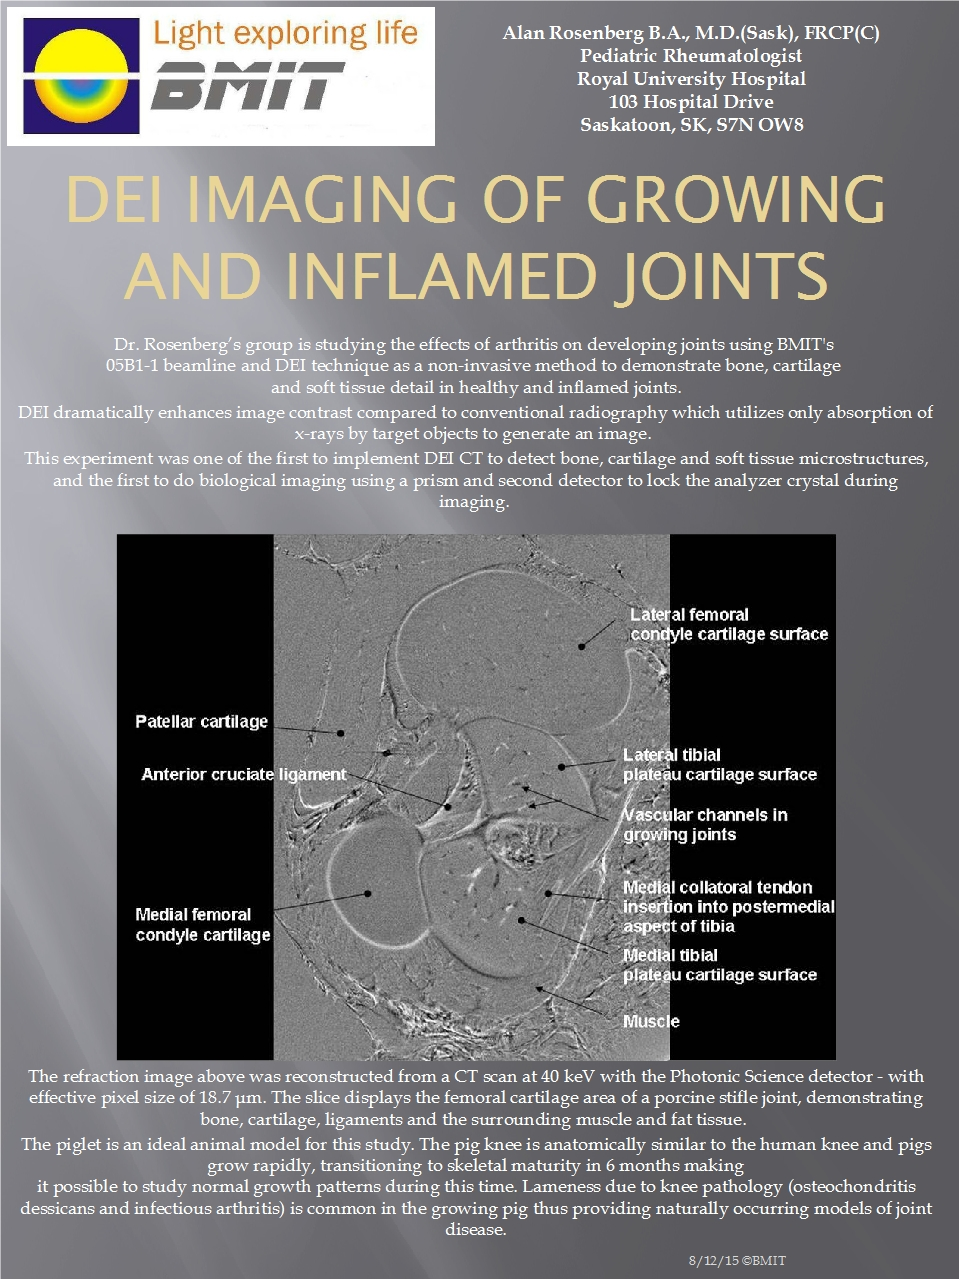 DEI Imaging of Growing and Inflamed Joints Image